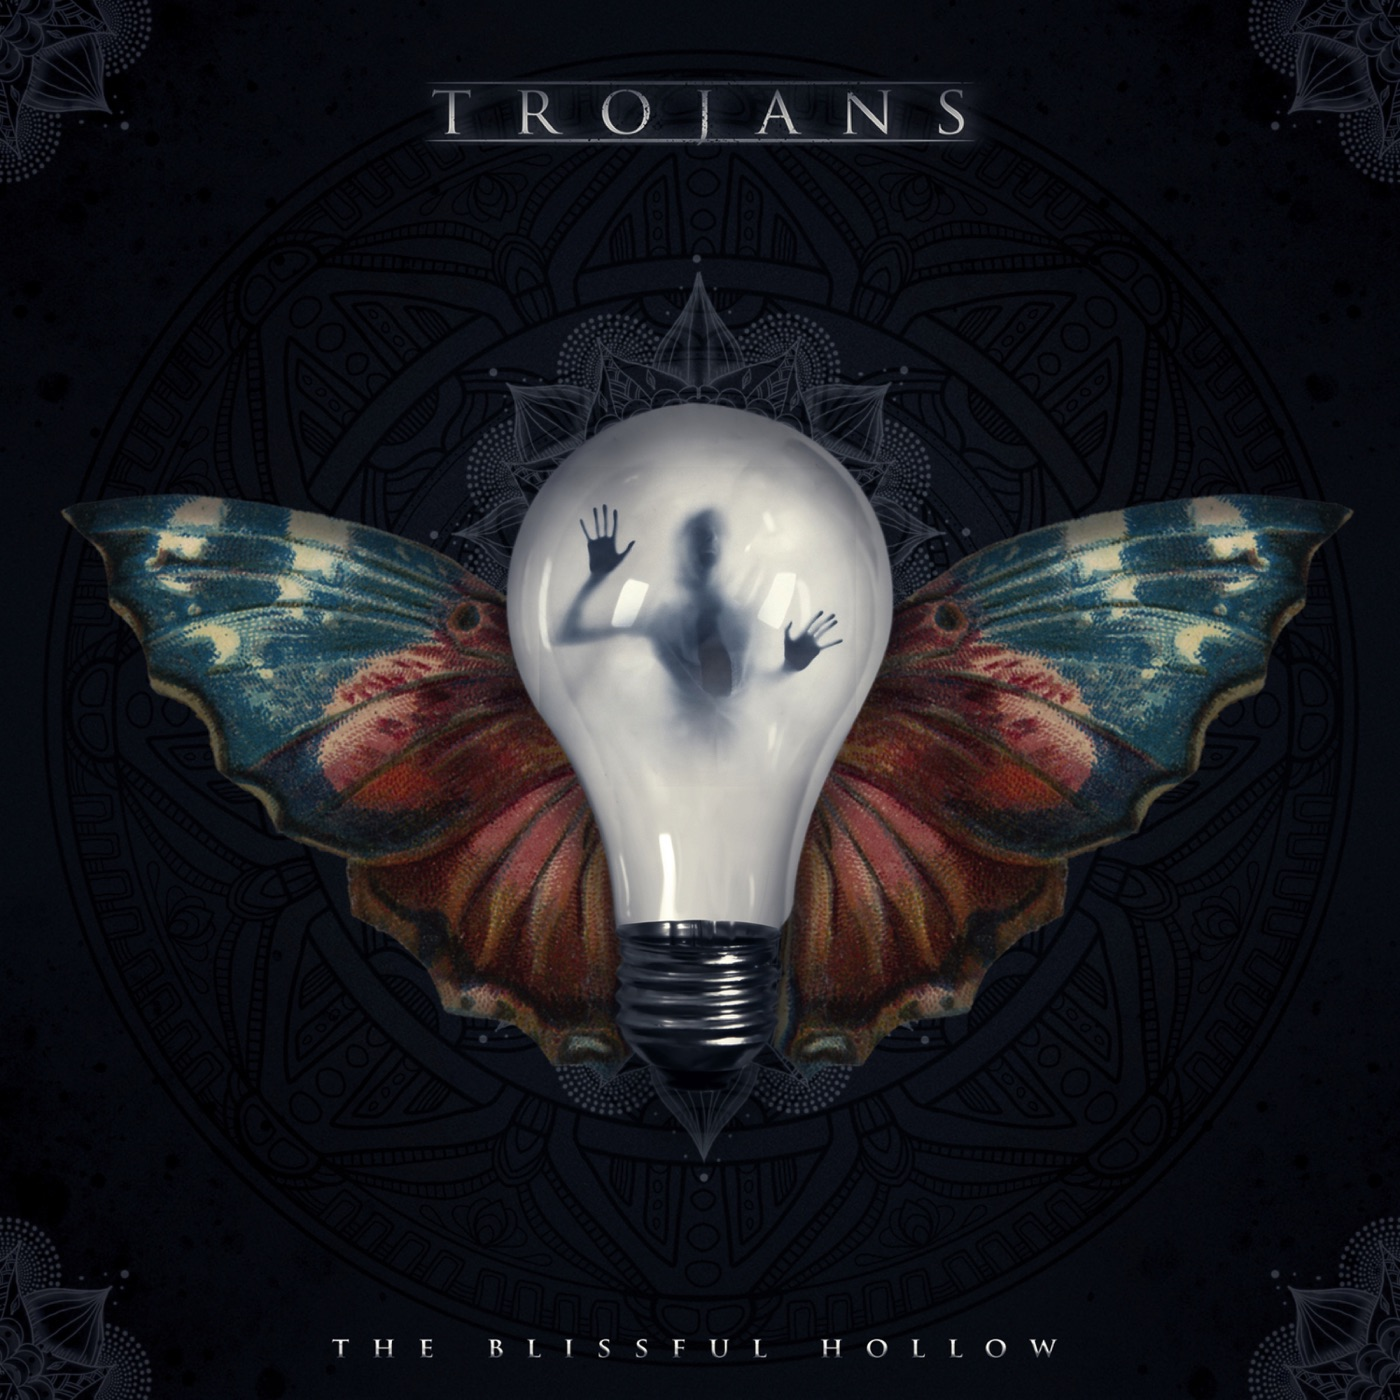 Trojans - The Blissful Hollow [EP] (2017)